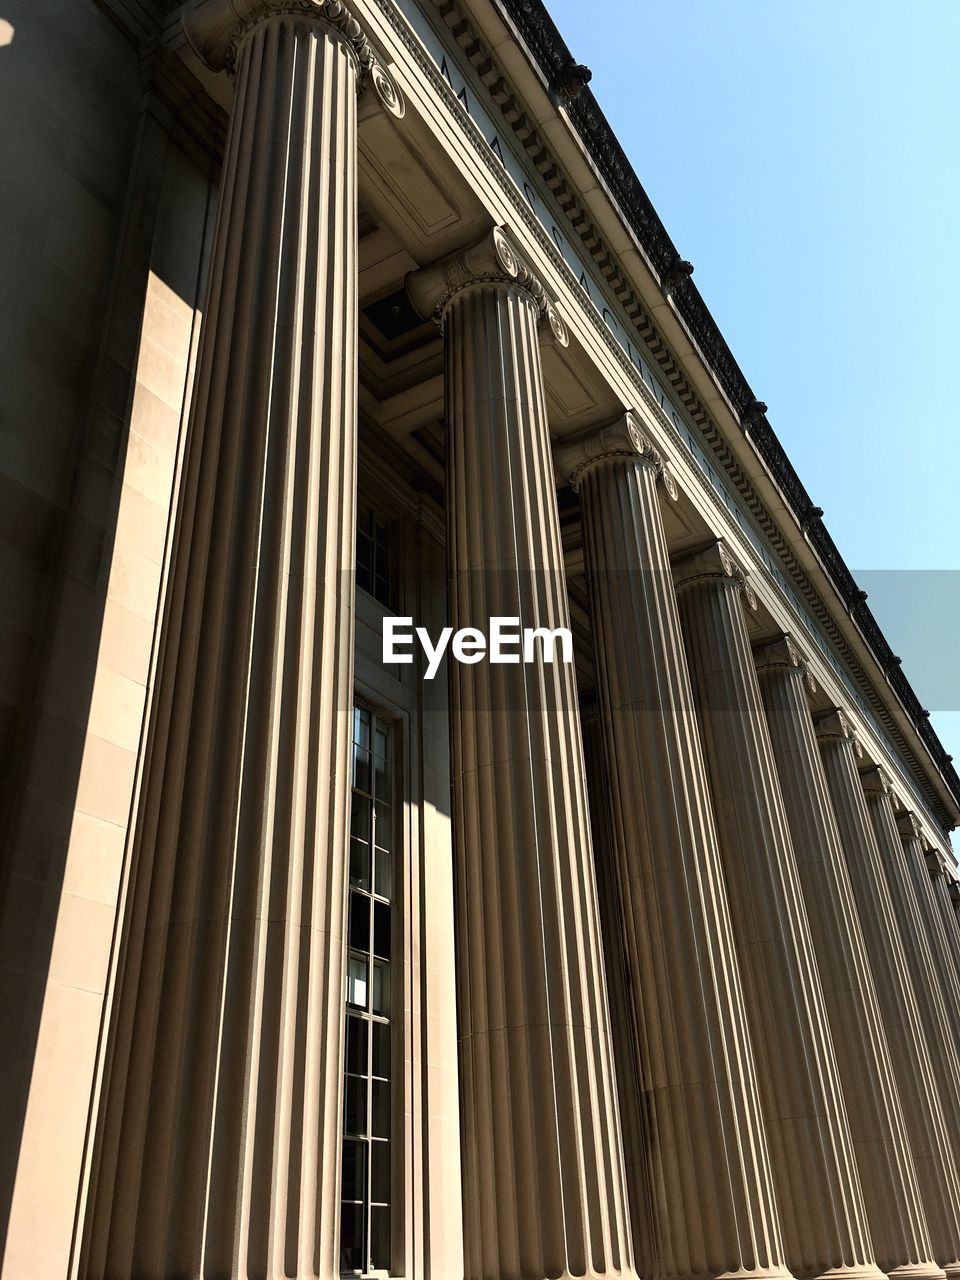 built structure, architecture, low angle view, building exterior, architectural column, building, sky, no people, city, nature, day, sunlight, outdoors, window, courthouse, clear sky, government, office building exterior, history, neo-classical